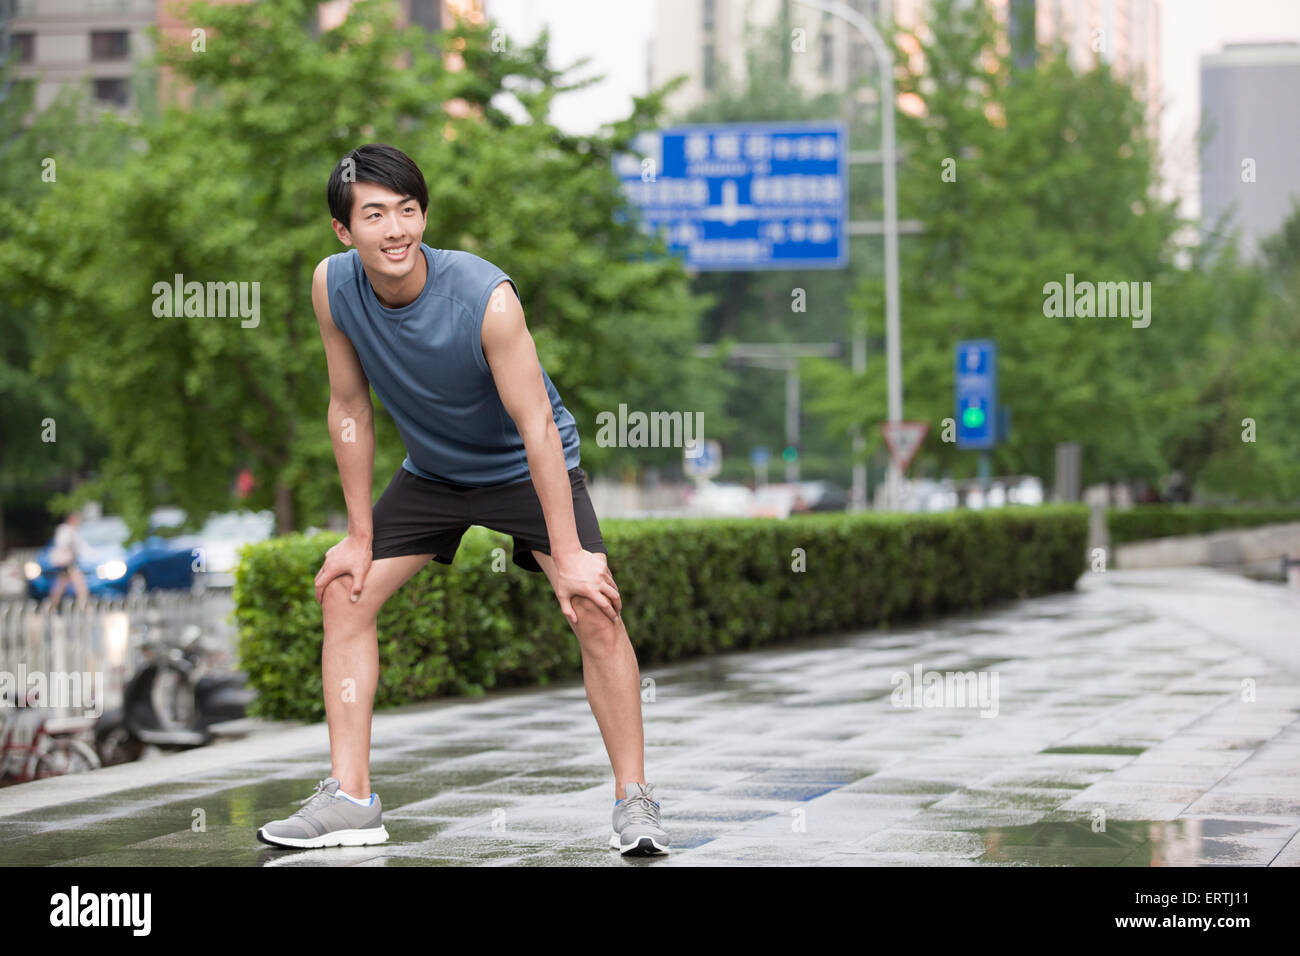 Young man taking a break from exercise - Stock Image